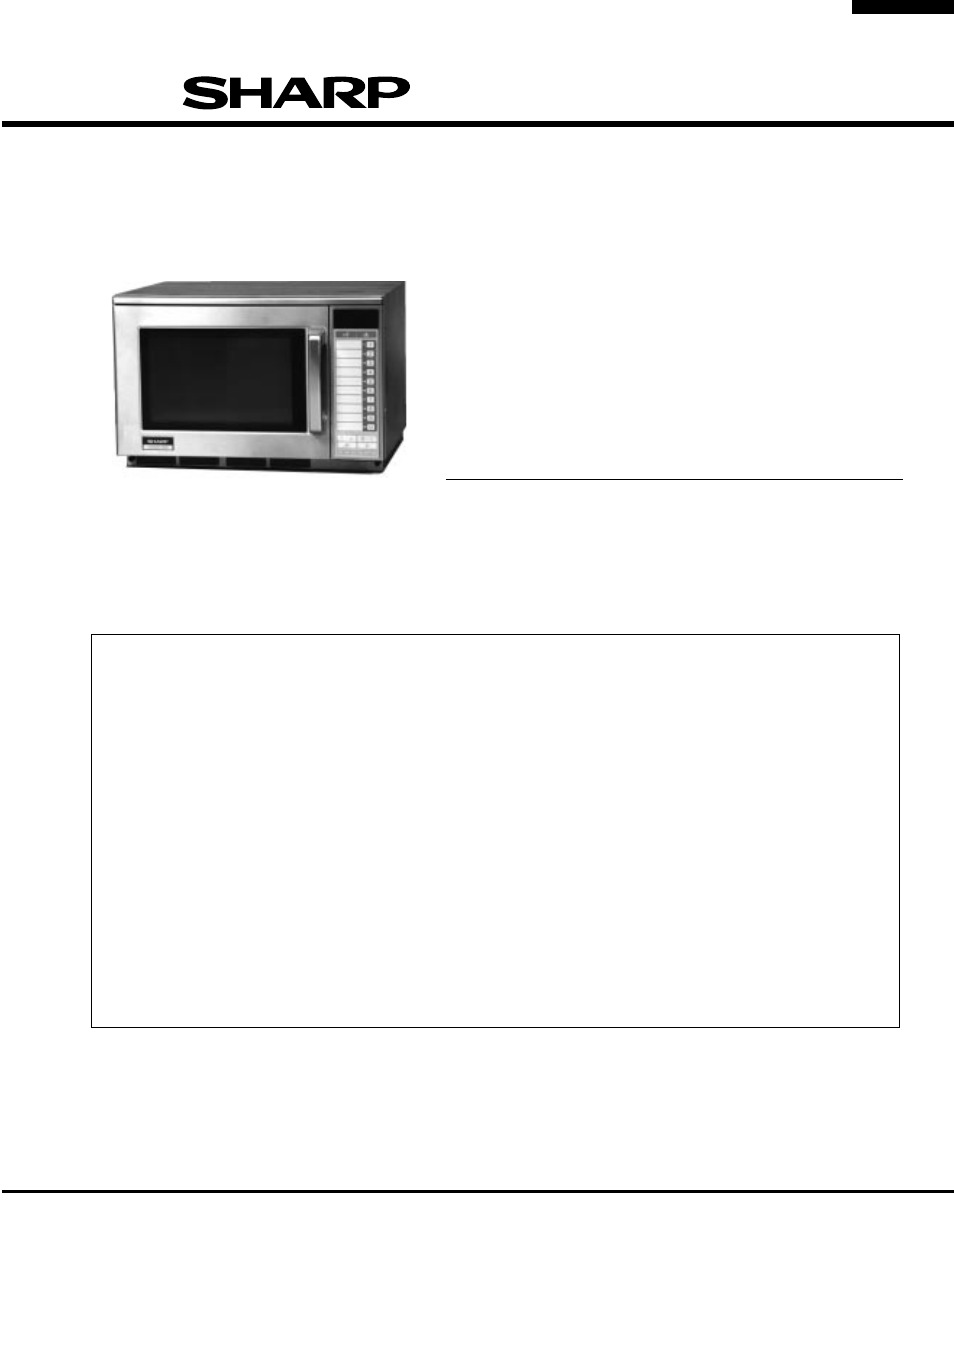 Sharp R 2397 User Manual 44 Pages Wiring Diagram Microwave Oven